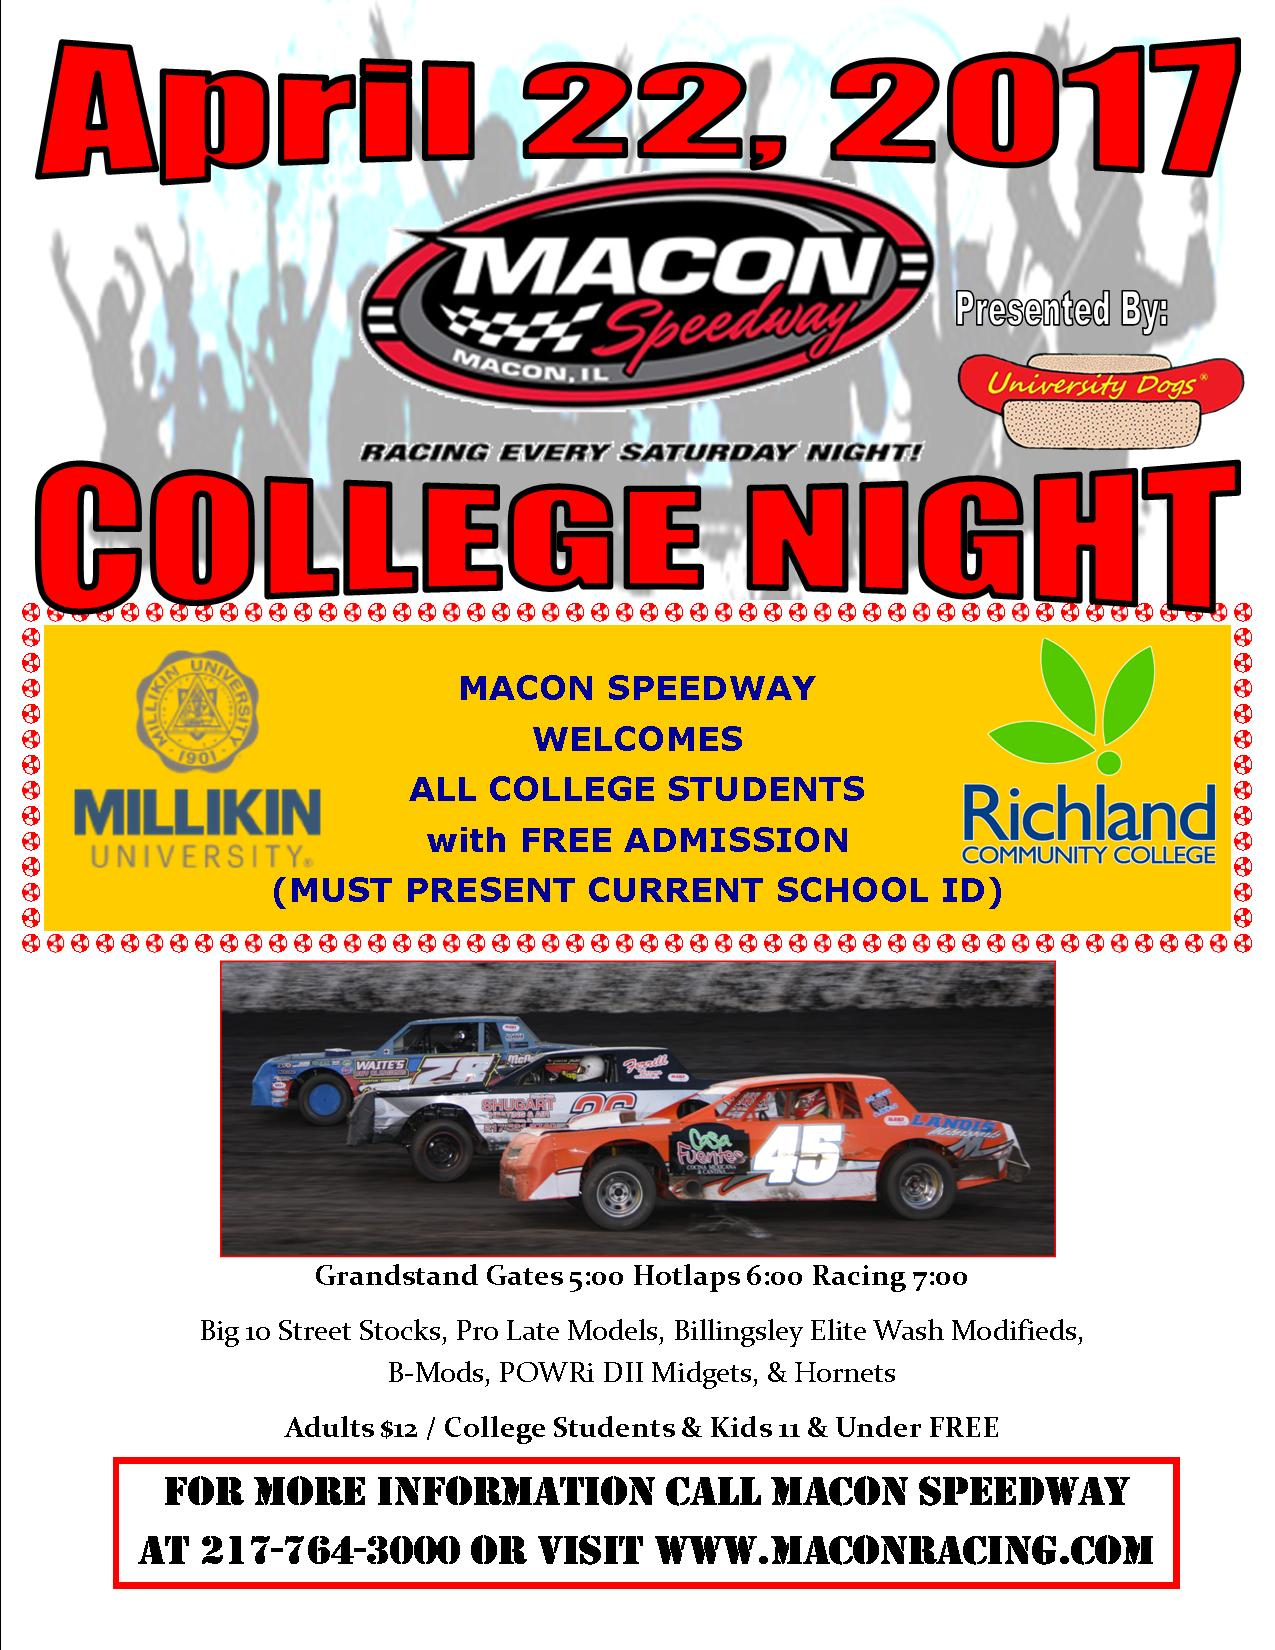 04-22-17 Macon Speedway College Night Flyer